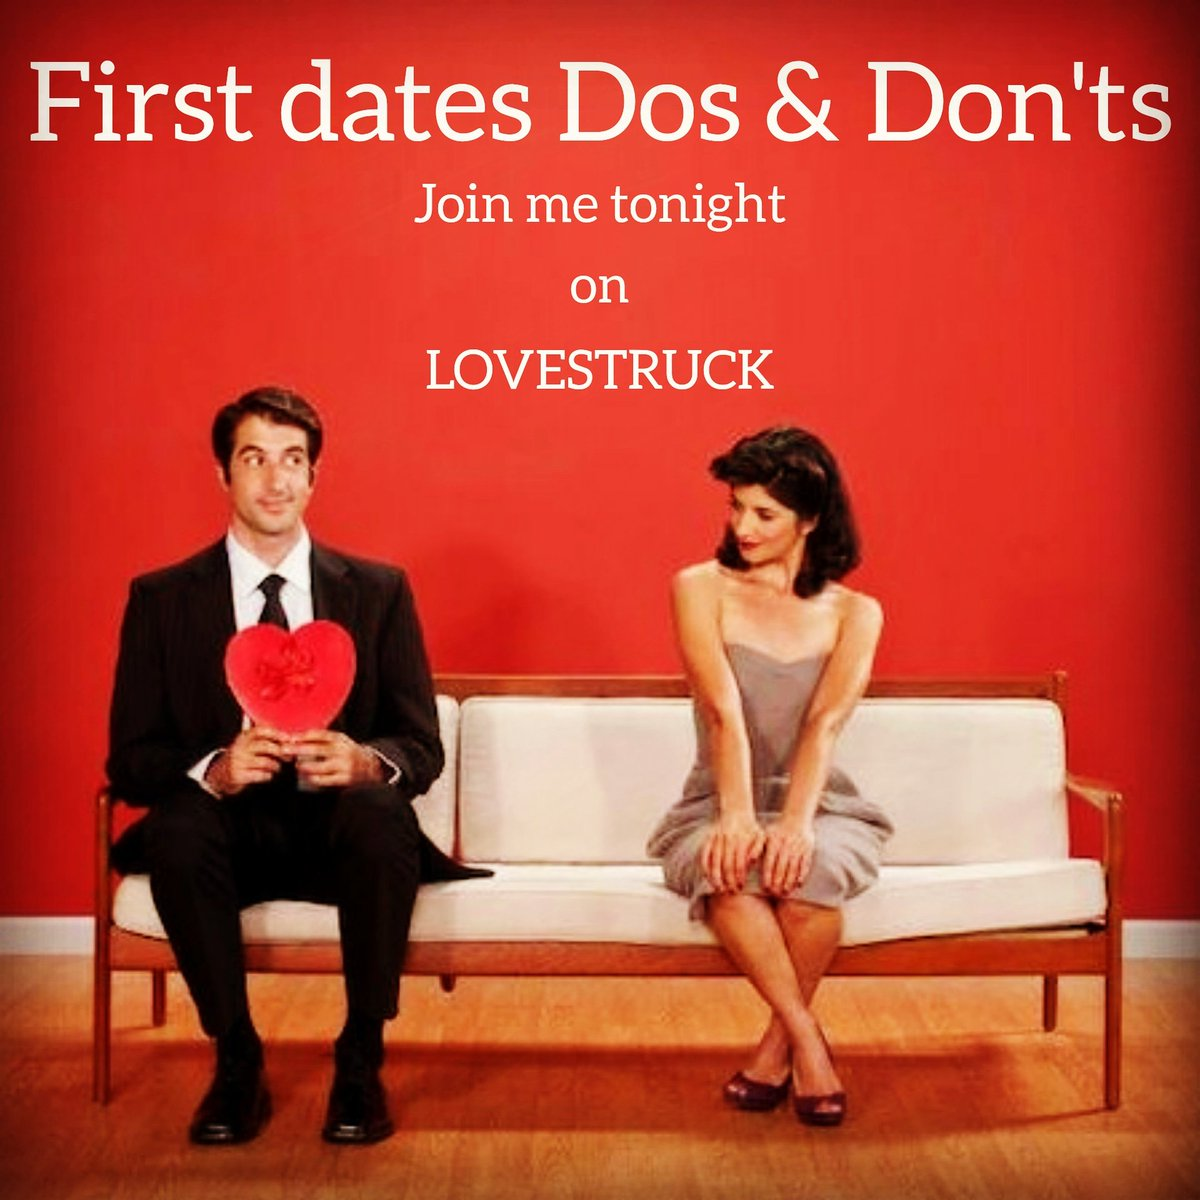 first dates dos and don ts